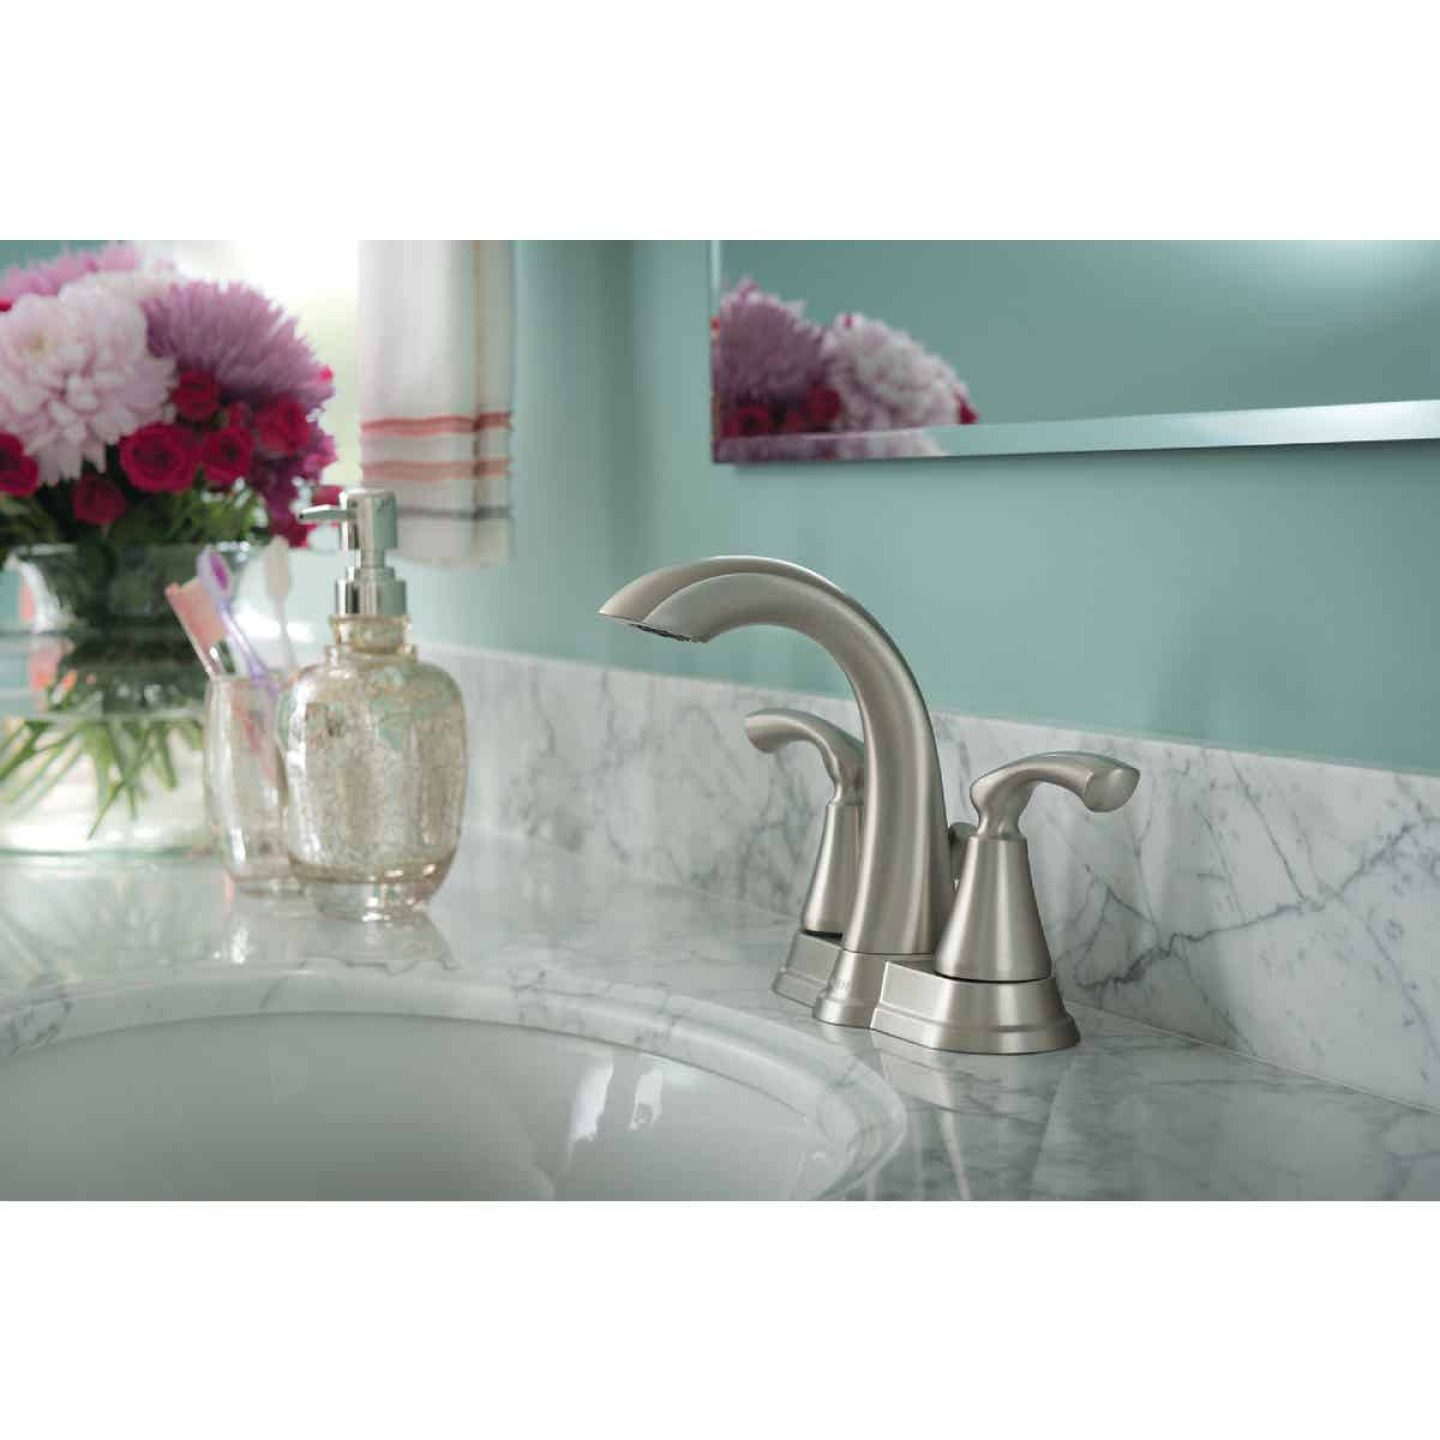 Moen Tiffin Brushed Nickel 2-Handle Lever 4 In. Centerset Bathroom Faucet Image 2